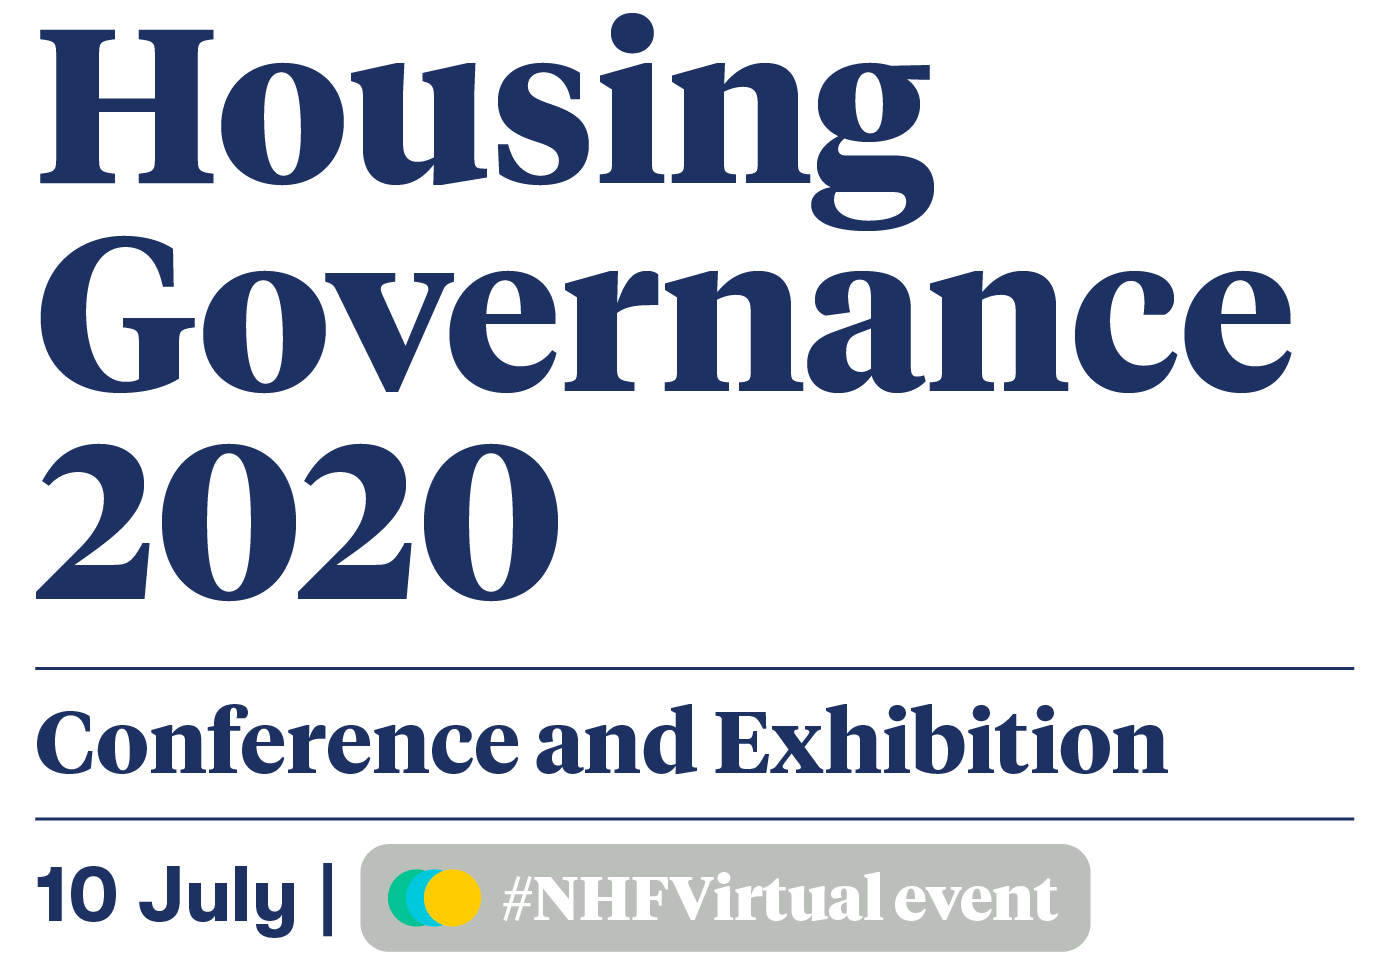 Housing Governance 2020